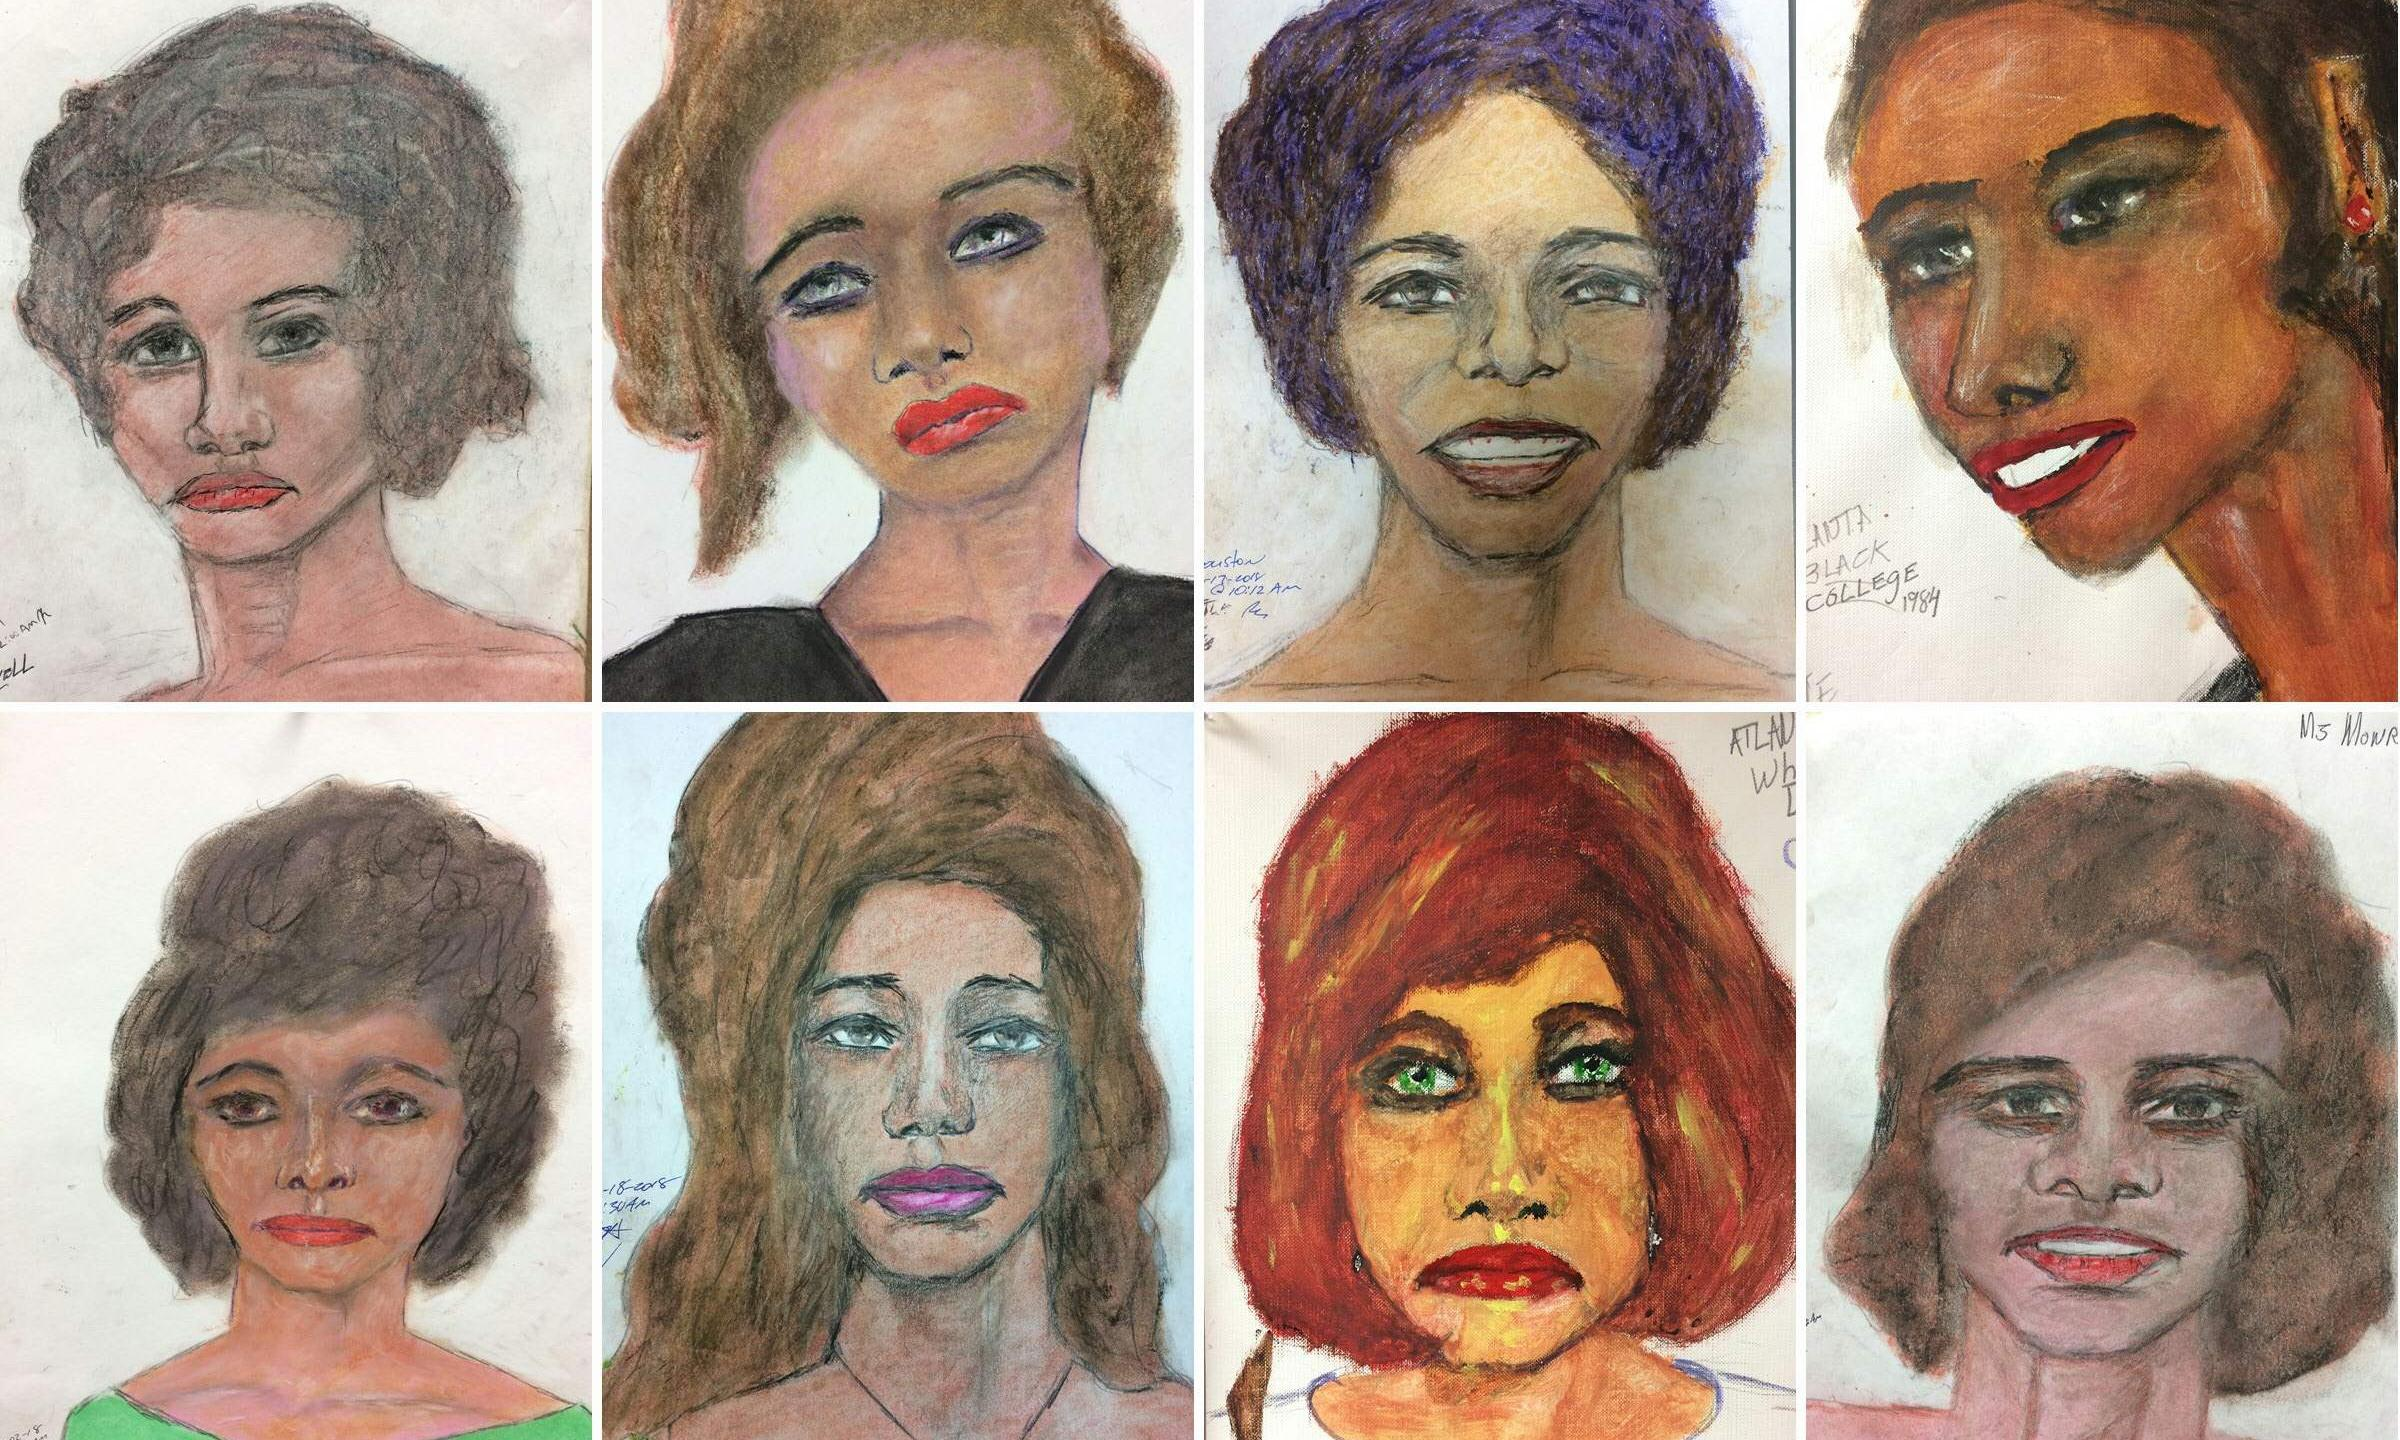 Serial killer's drawings of alleged victims released by FBI